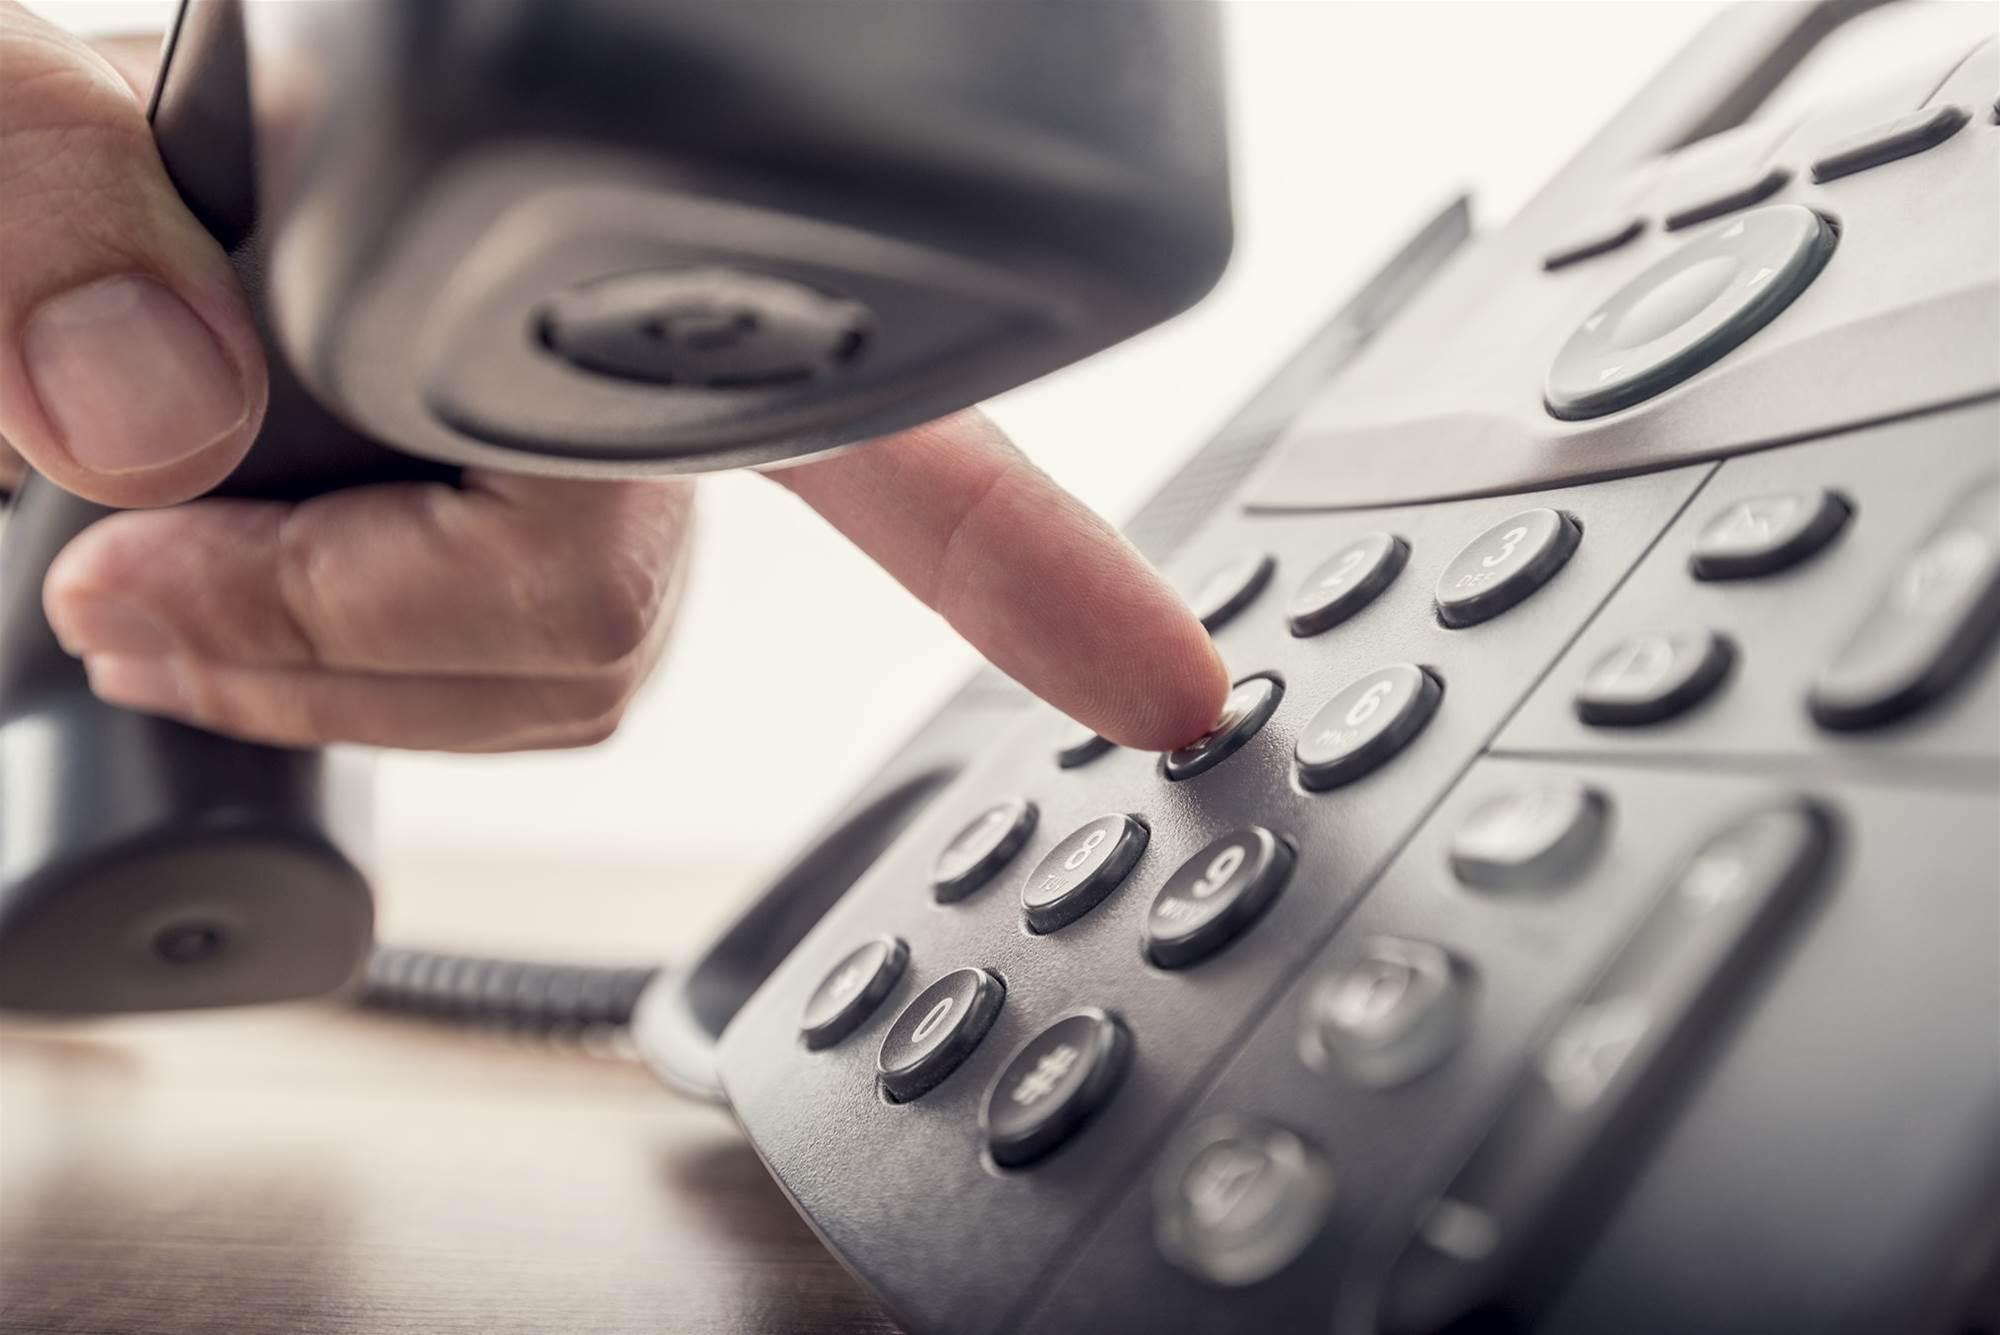 Telstra wants voice-only NBN users back